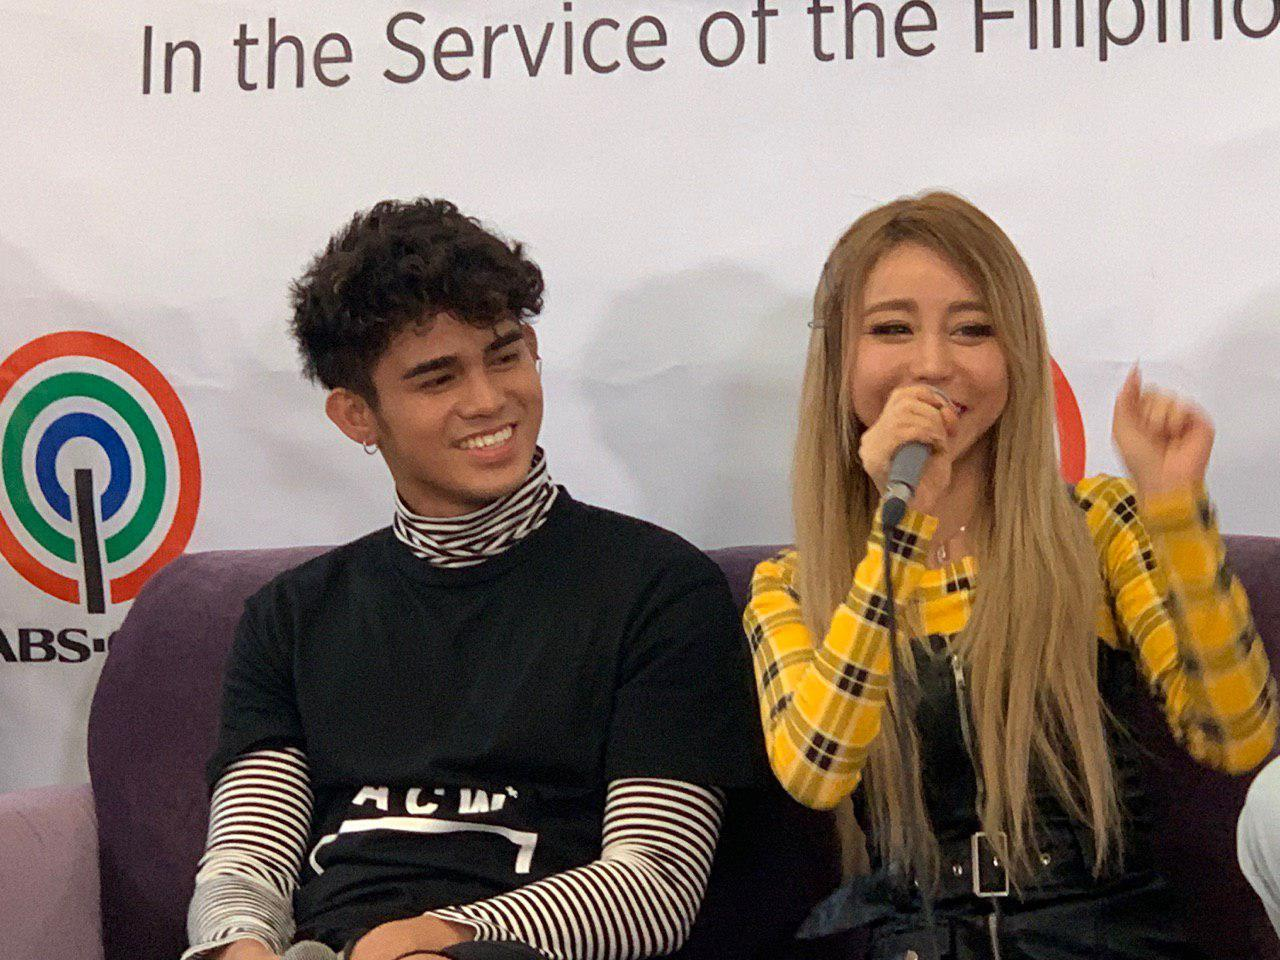 Iñigo Pascual and Australian YouTube Sensation Wengie